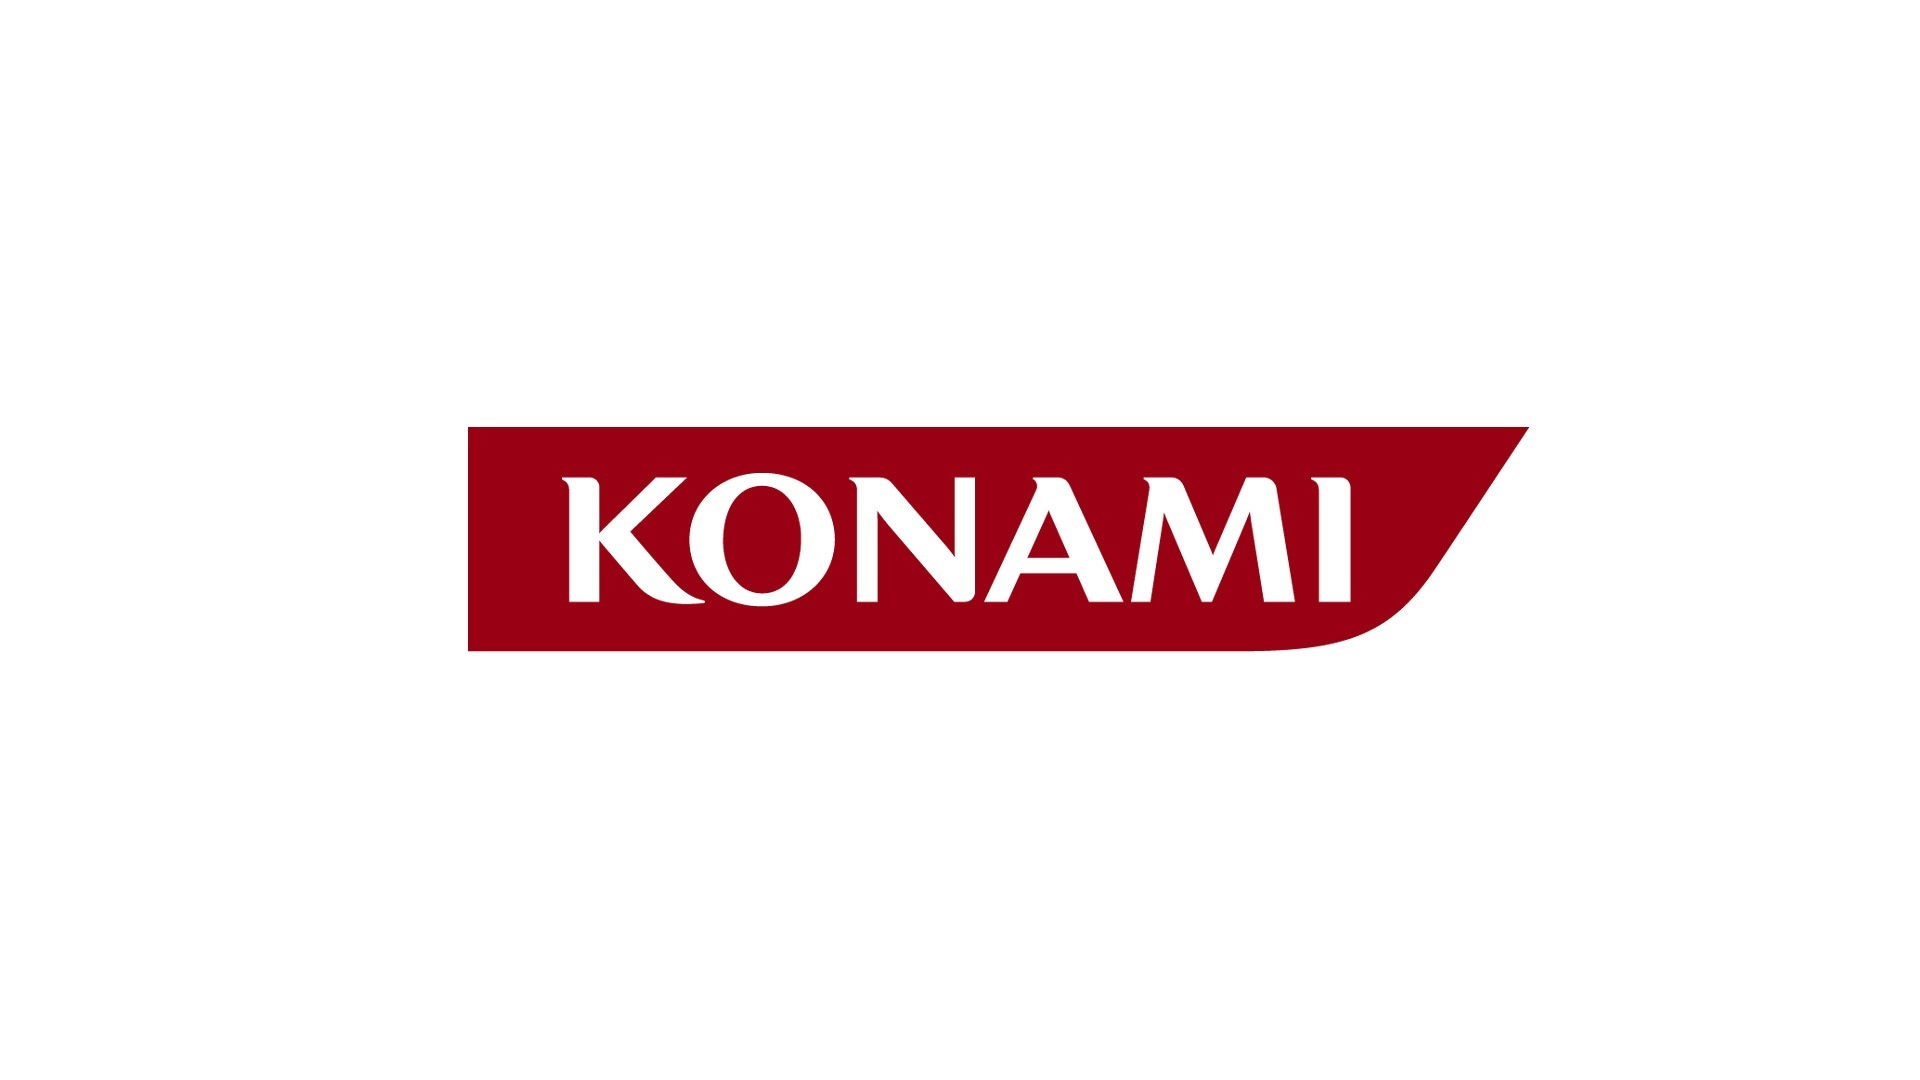 konami-the-legendary-japanese-games-developer.jpg